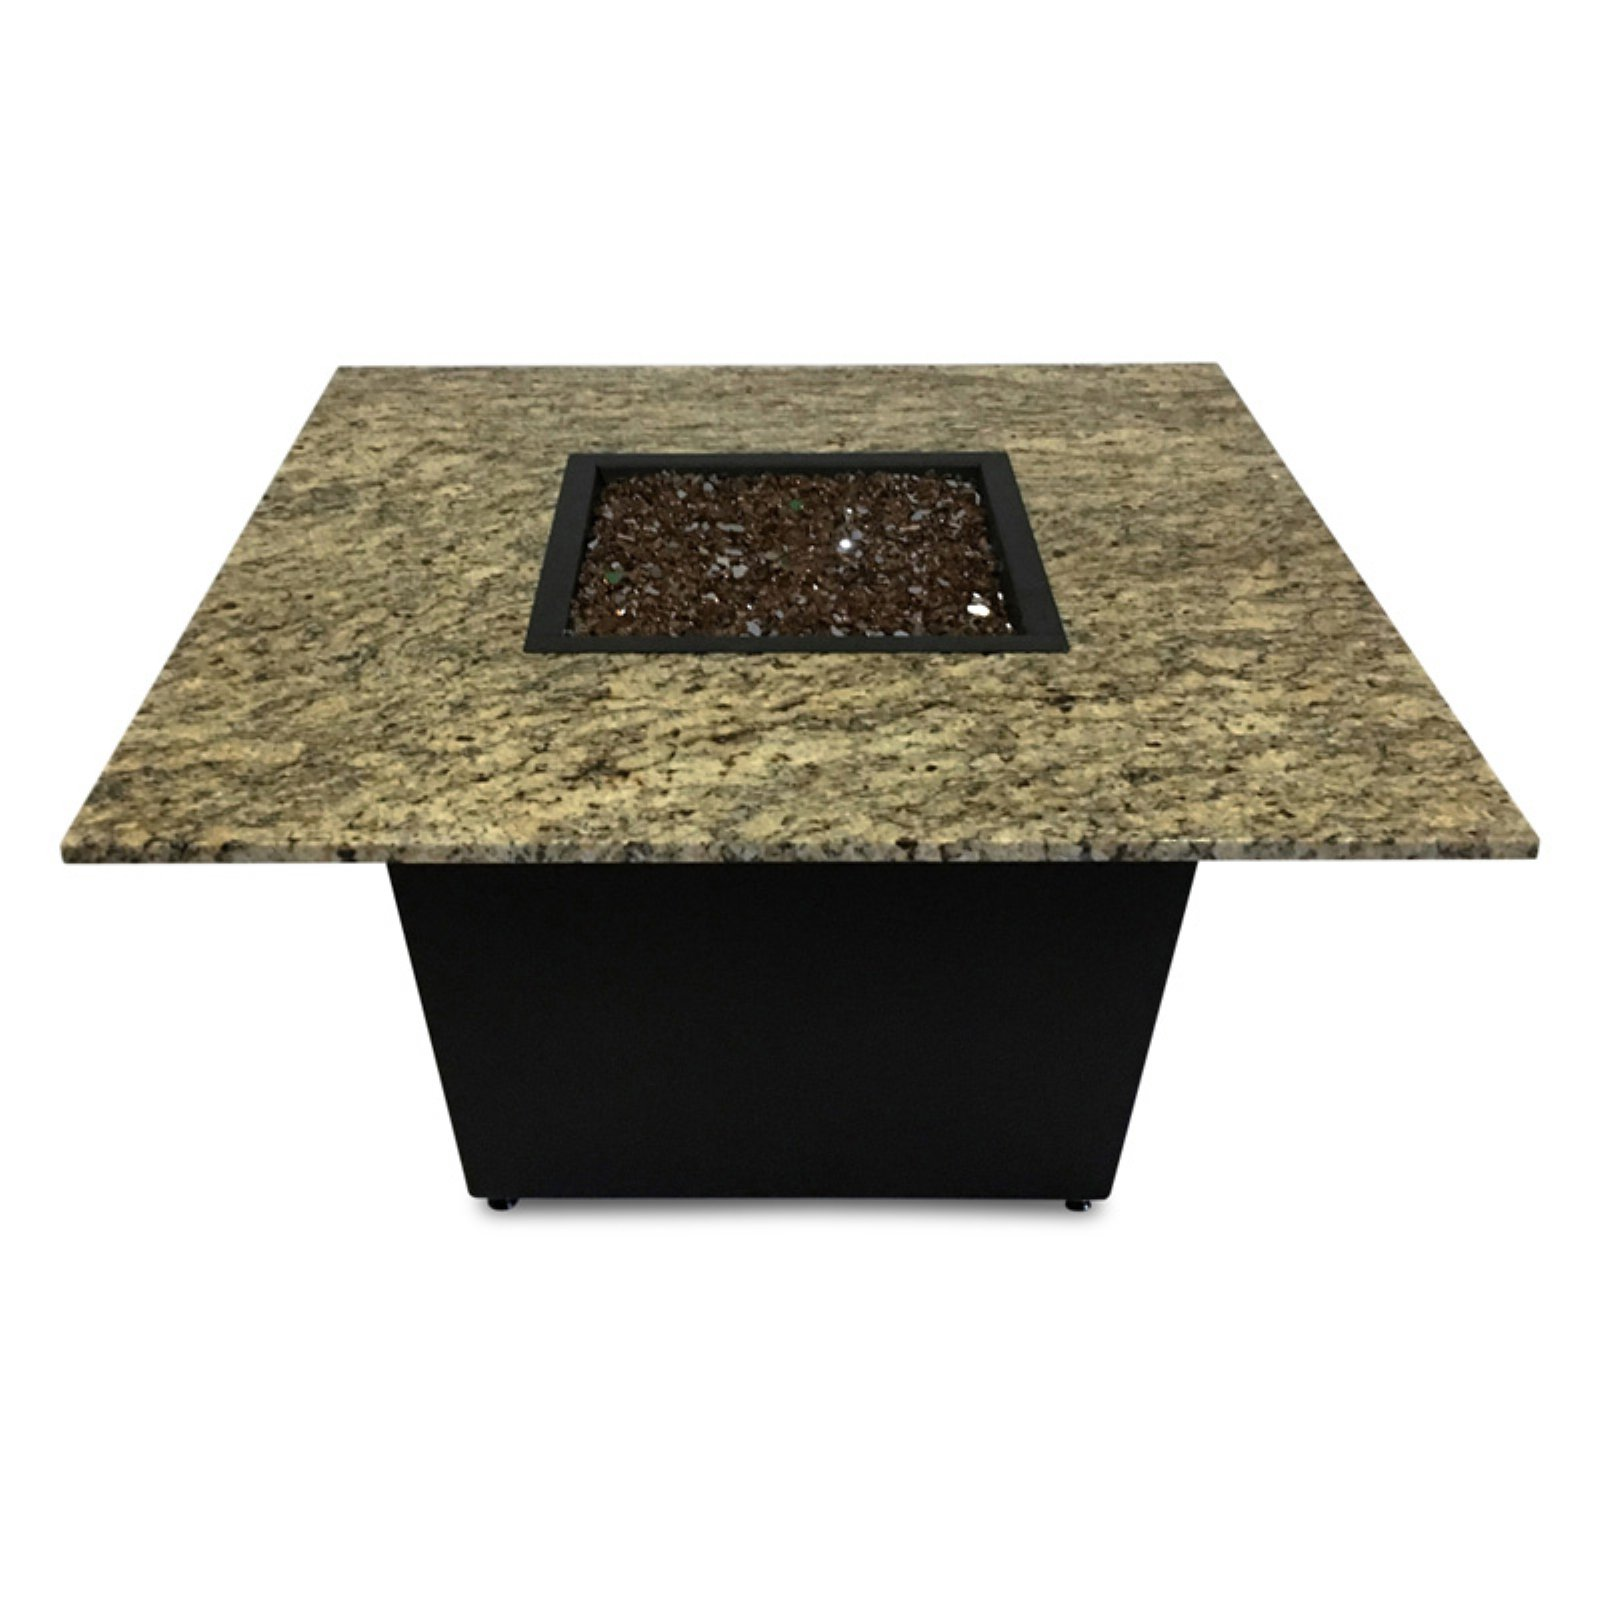 Firetainment Venice 42 in. Fire Table with Reflective Fire Glass